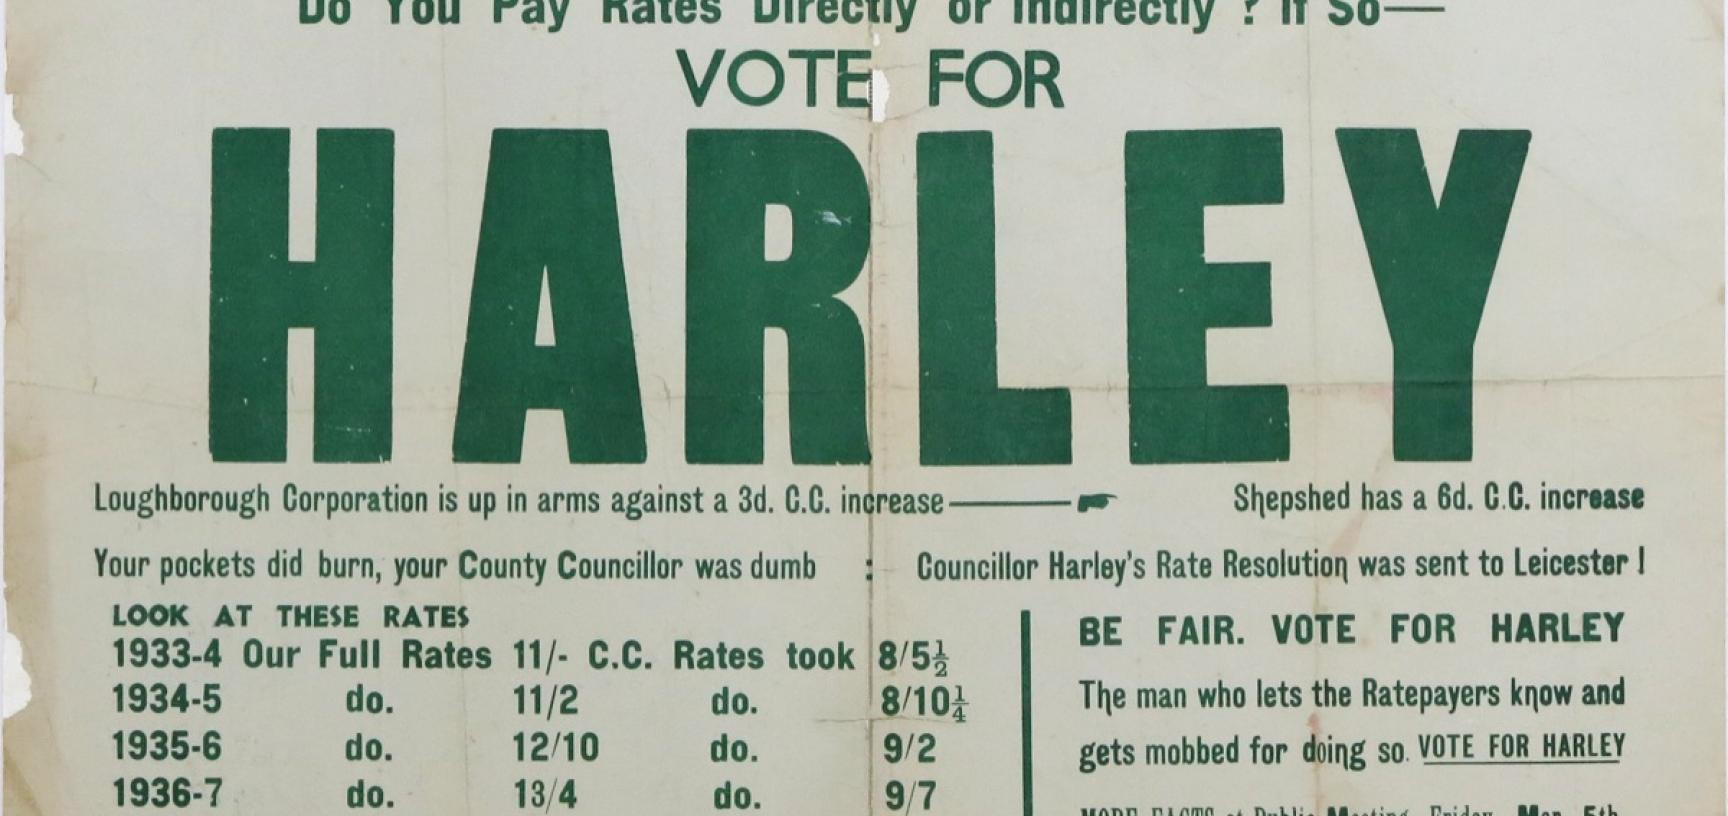 Campaign poster for the Leicestershire County Council election held on 6 March 1937: 'VOTE FOR HARLEY [...] The man who lets Ratepayers know and gets mobbed for doing so'. (Courtesy Michael Wortley)